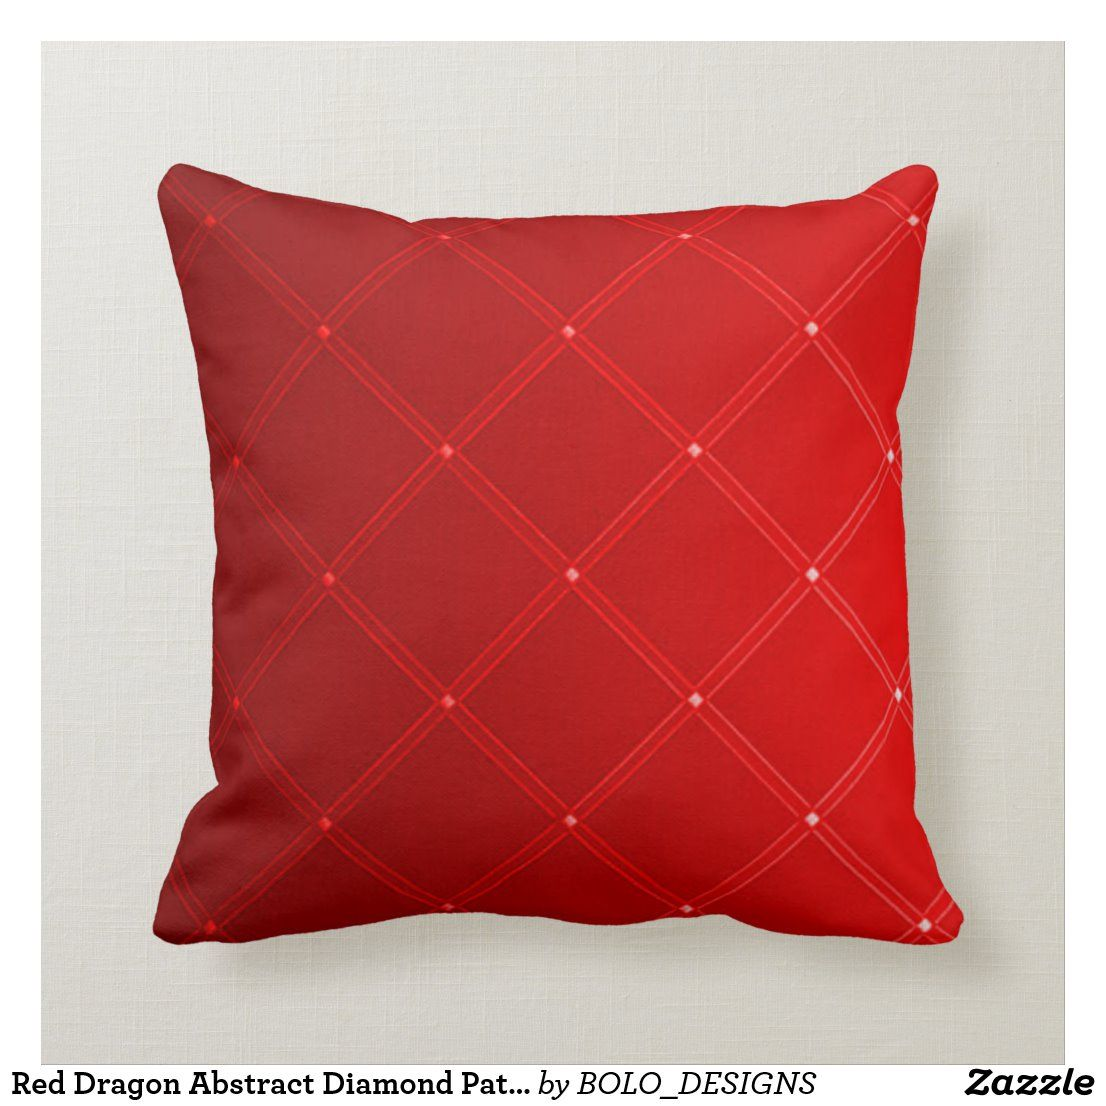 Red Dragon Abstract Diamond Pattern Throw Pillow Zazzle Com Patterned Throw Pillows Throw Pillows Pillows